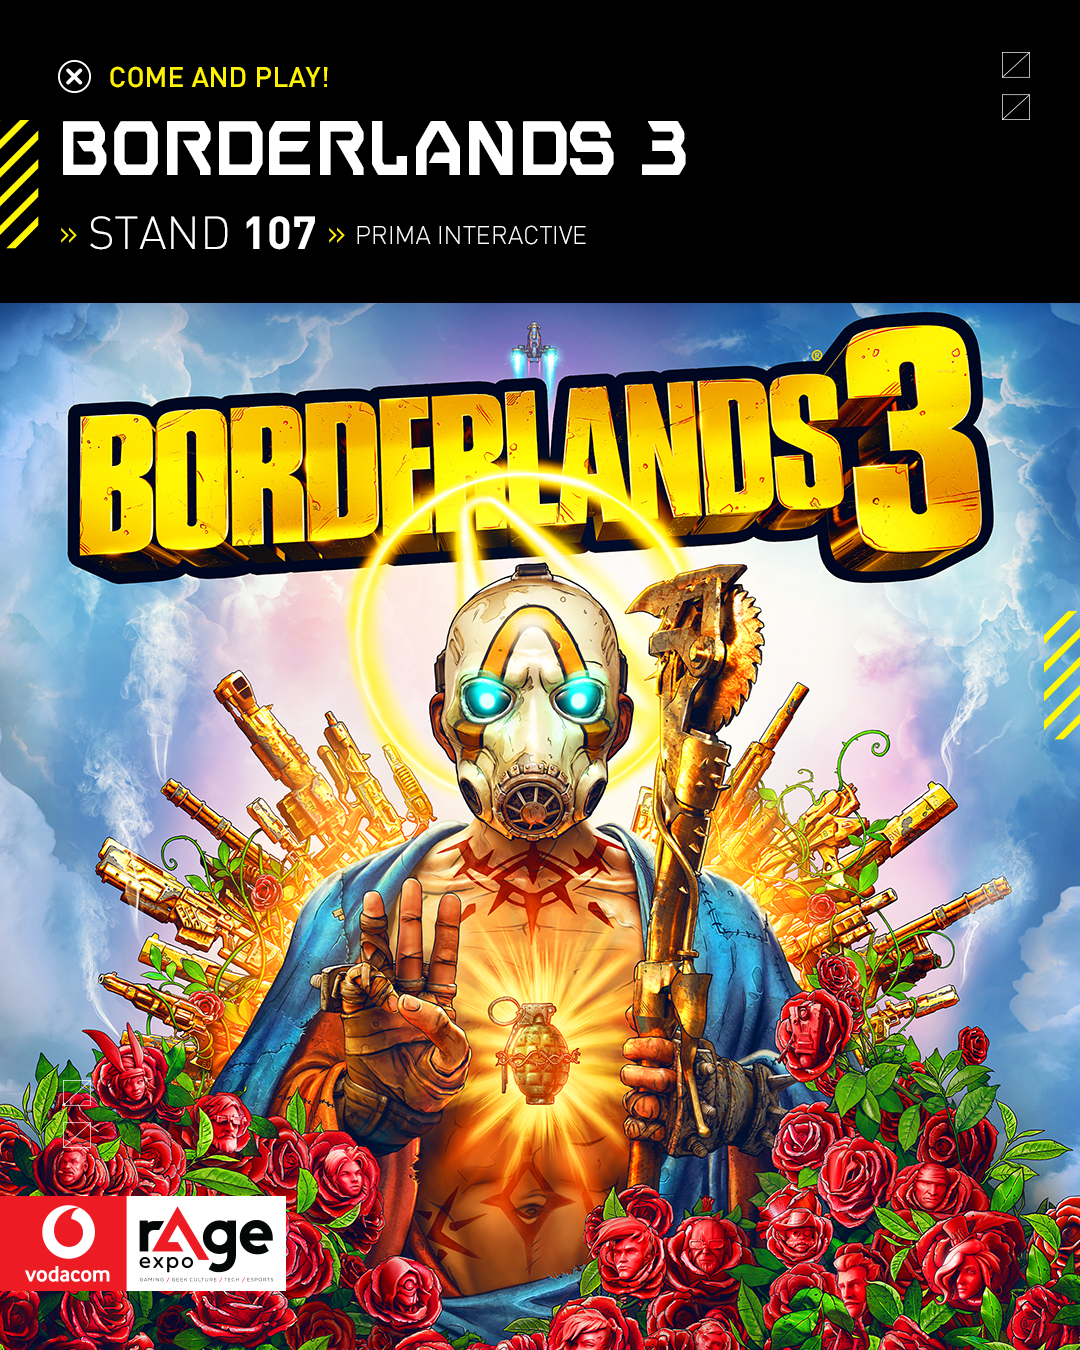 Vodacom rAge 2019 - Borderlands 3